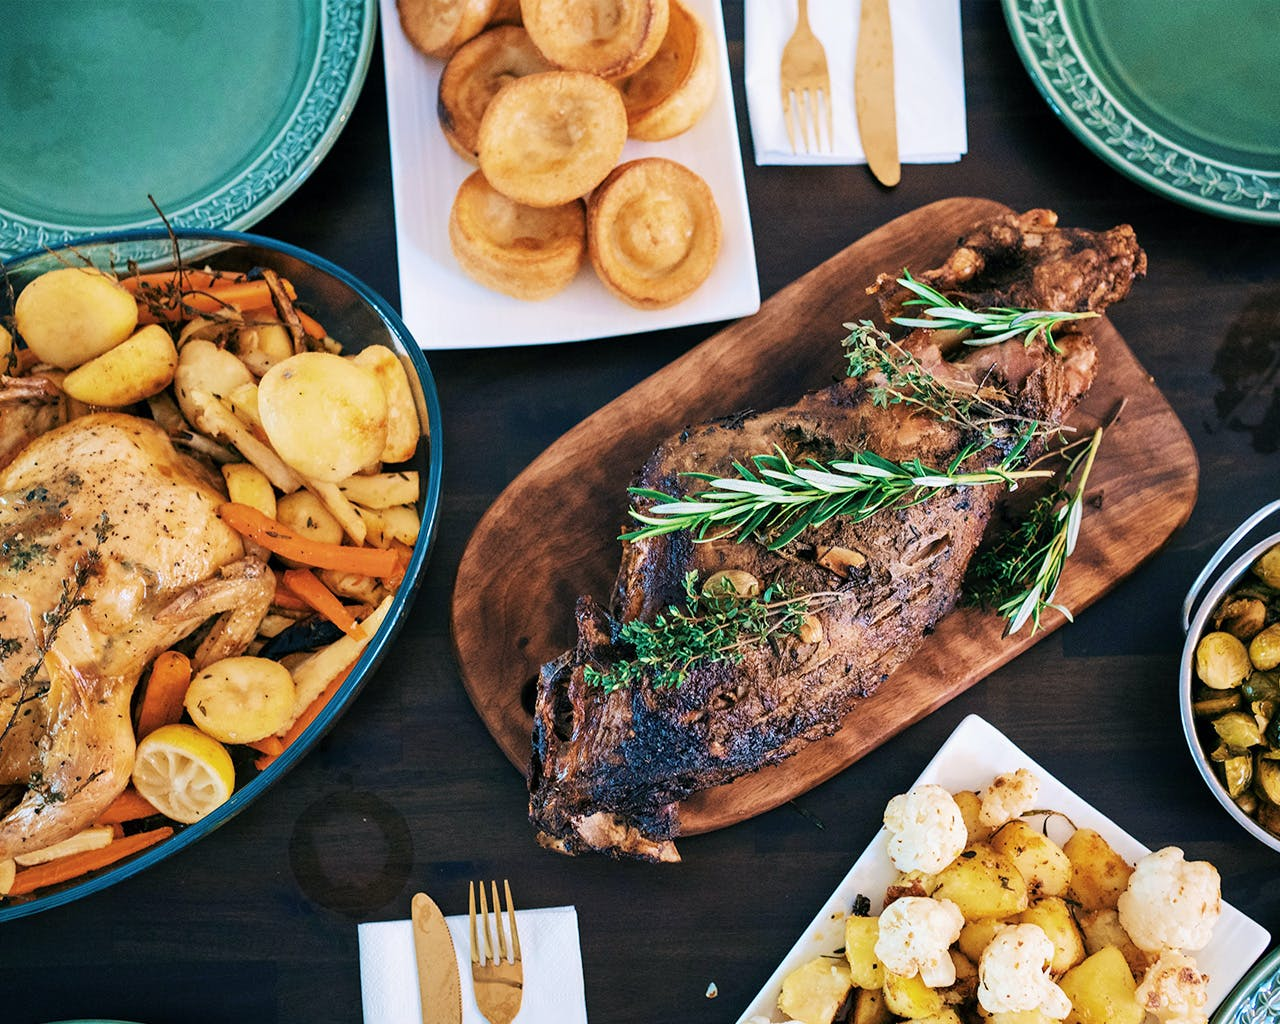 Eat In! Where To Order Mother's Day Family Set Menus For May 9